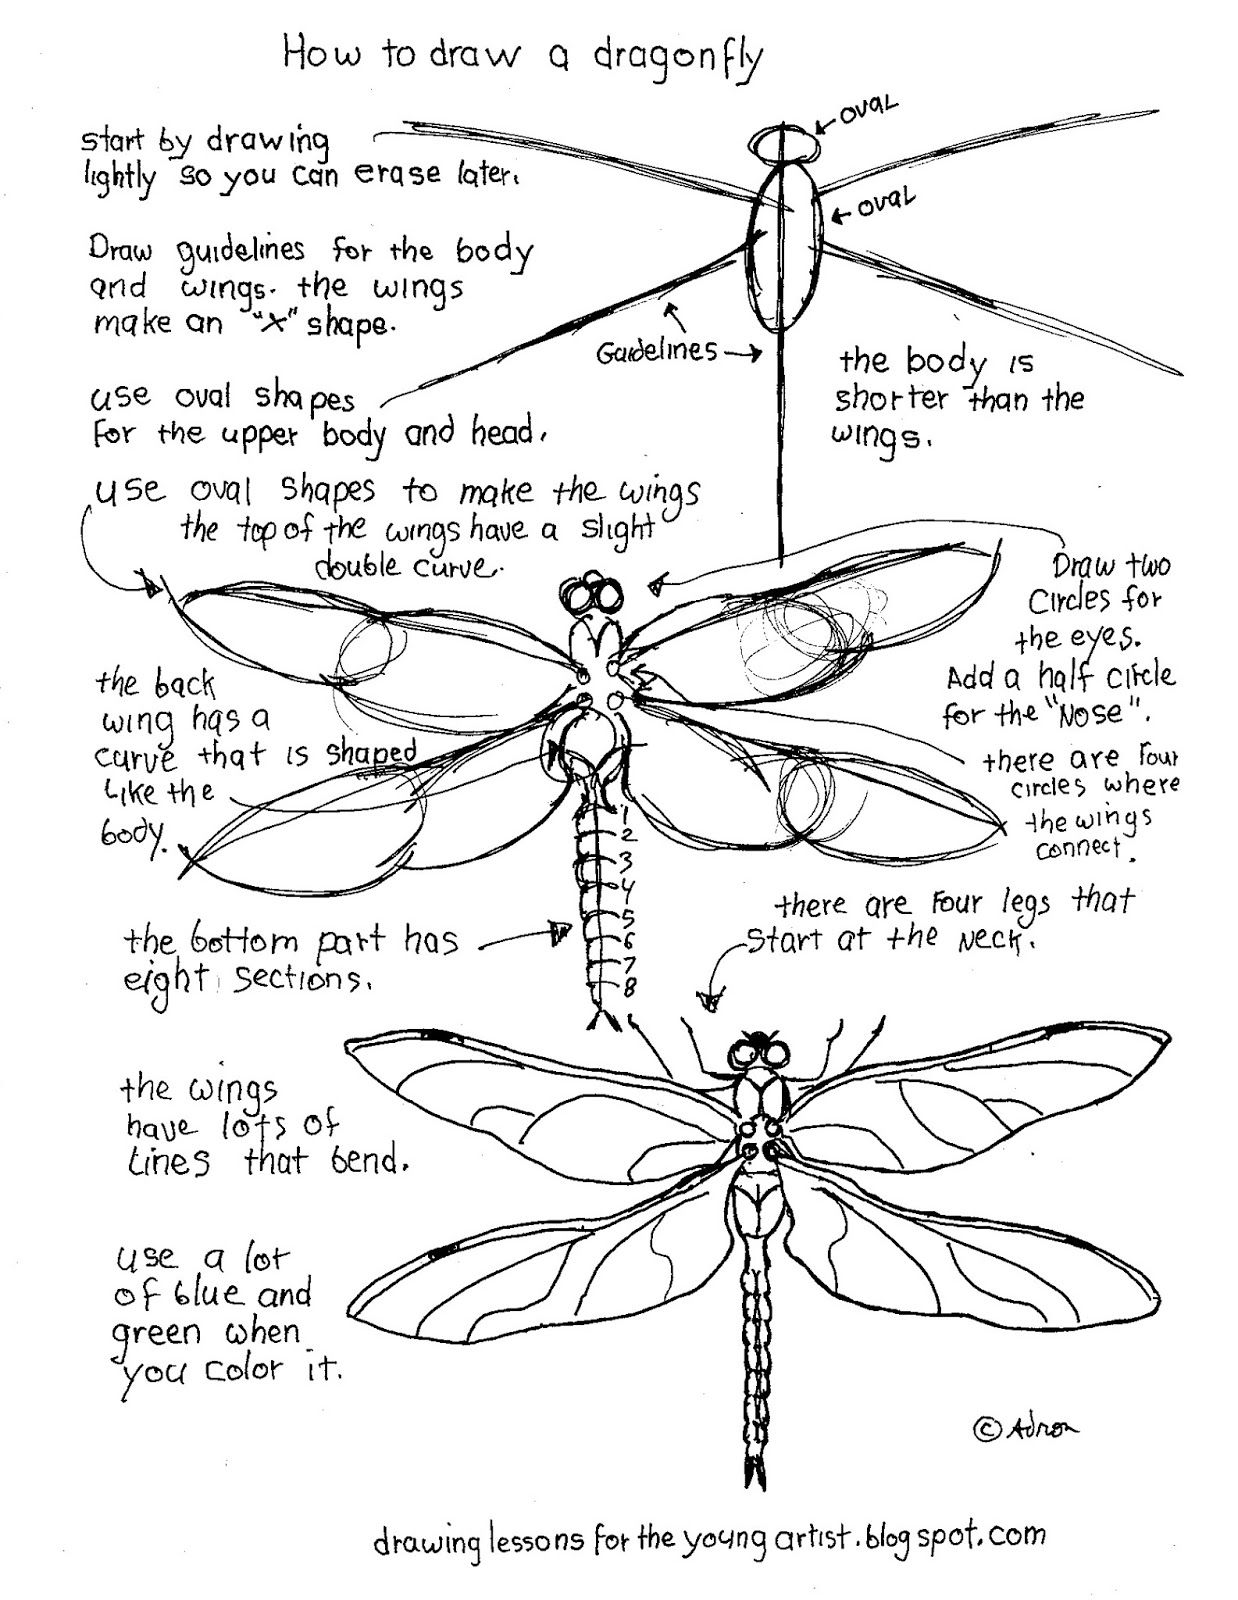 medium resolution of how to draw worksheets for the young artist printable how to draw a dragonfly worksheet there are project notes at the blog